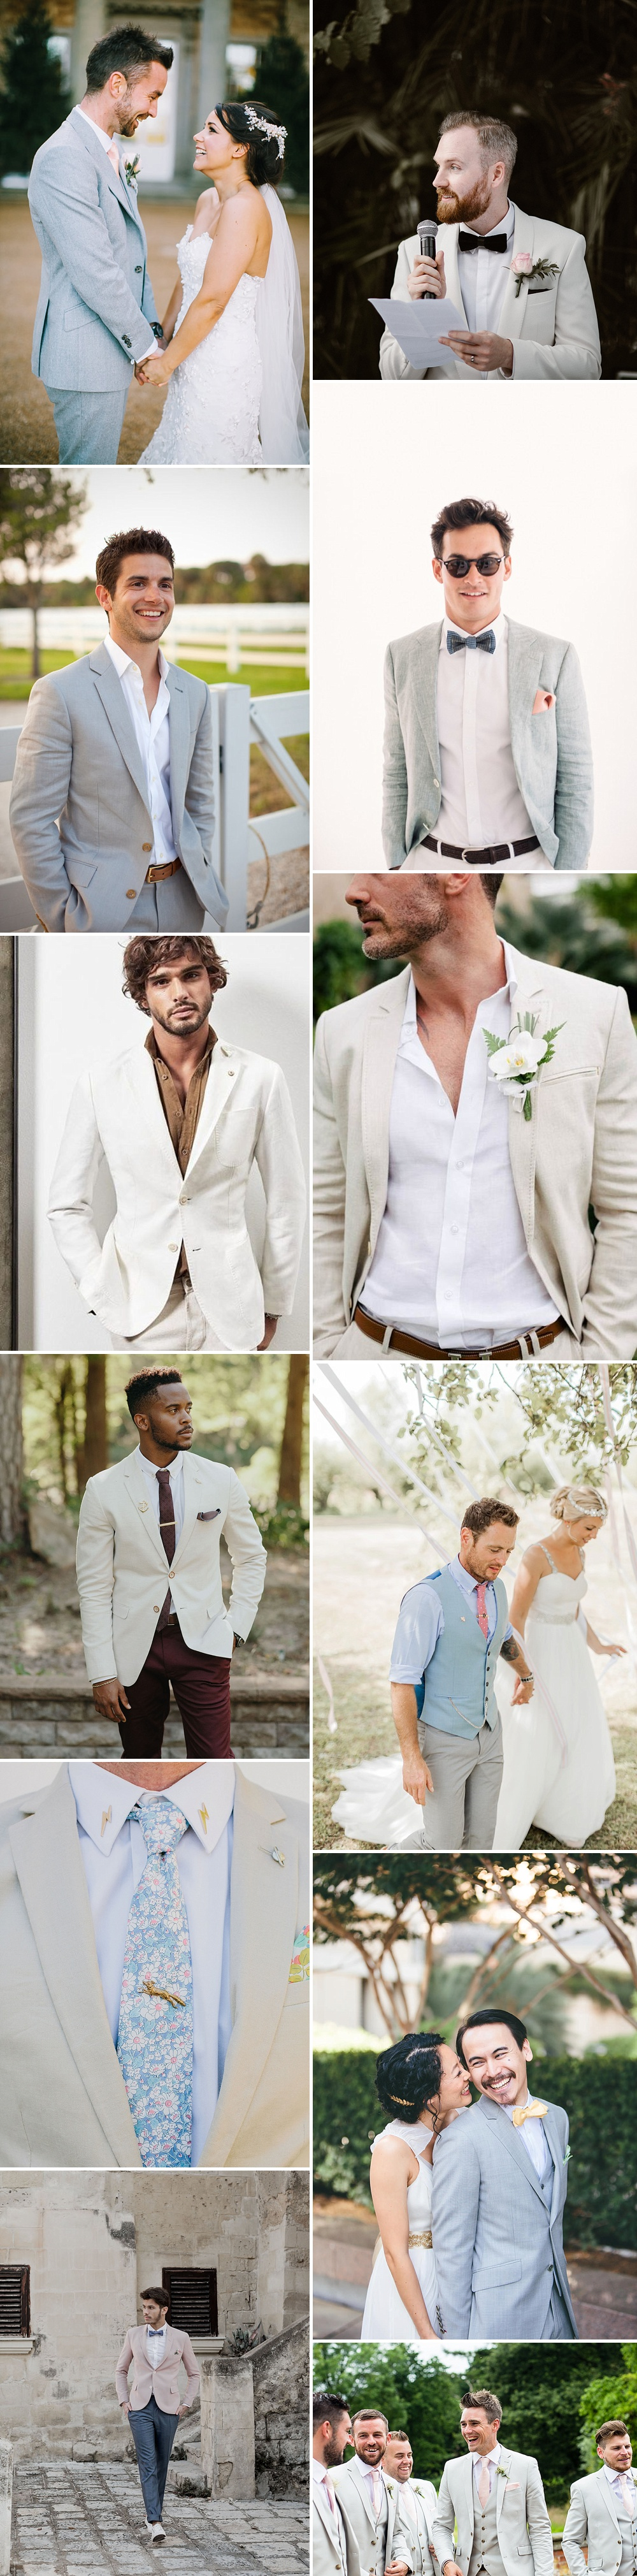 d0476b55b Groom Wearing Light Coloured Jacket For Wedding | Groom Fashion Inspiration